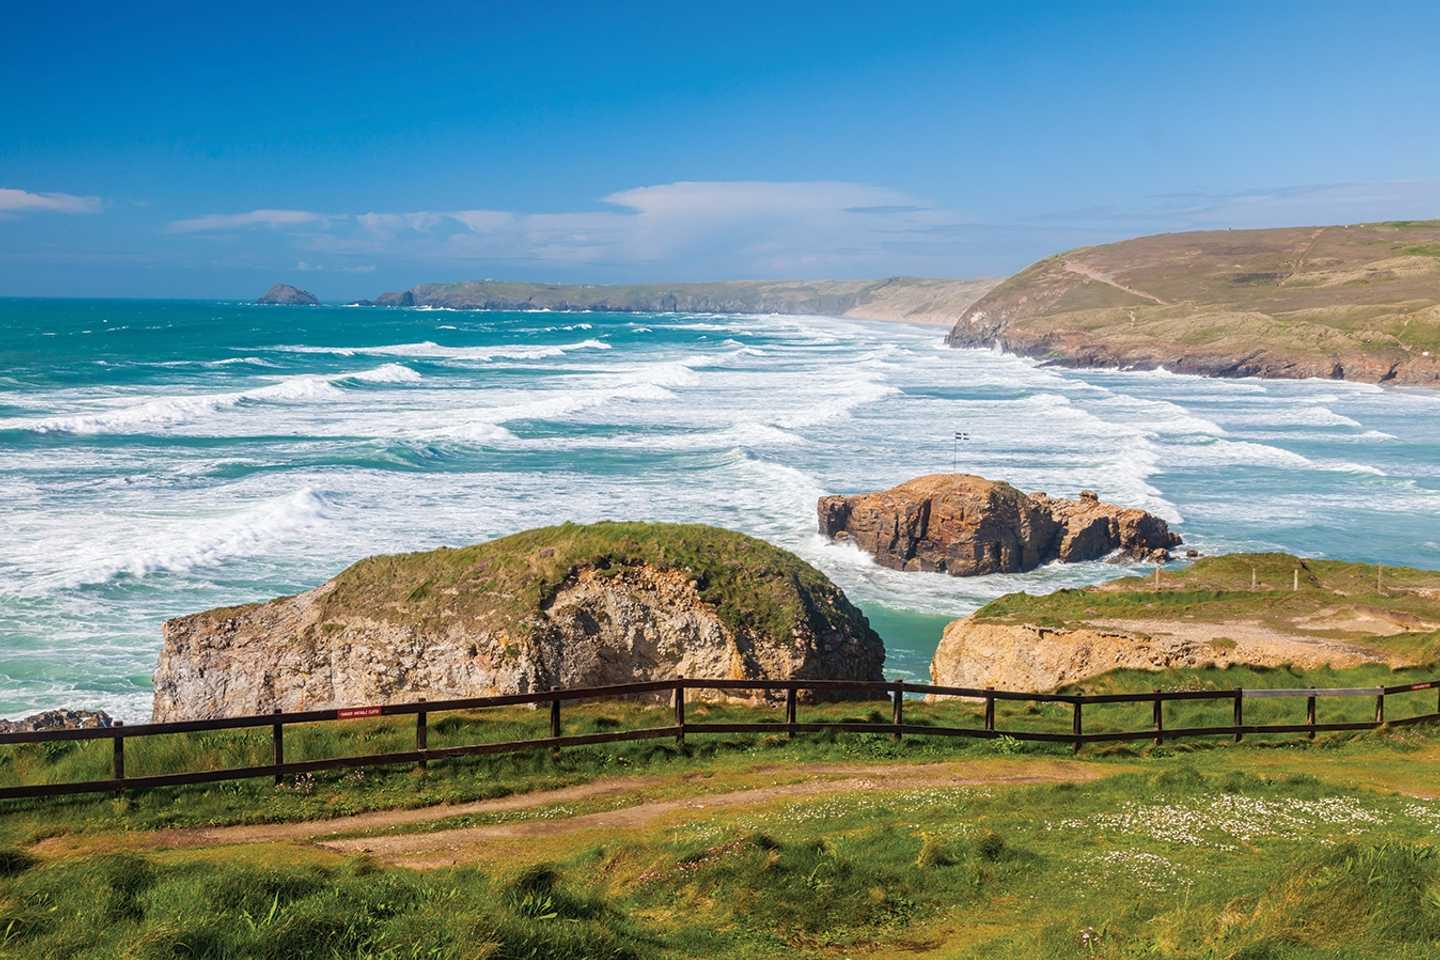 View of Perranporth beach in Cornwall